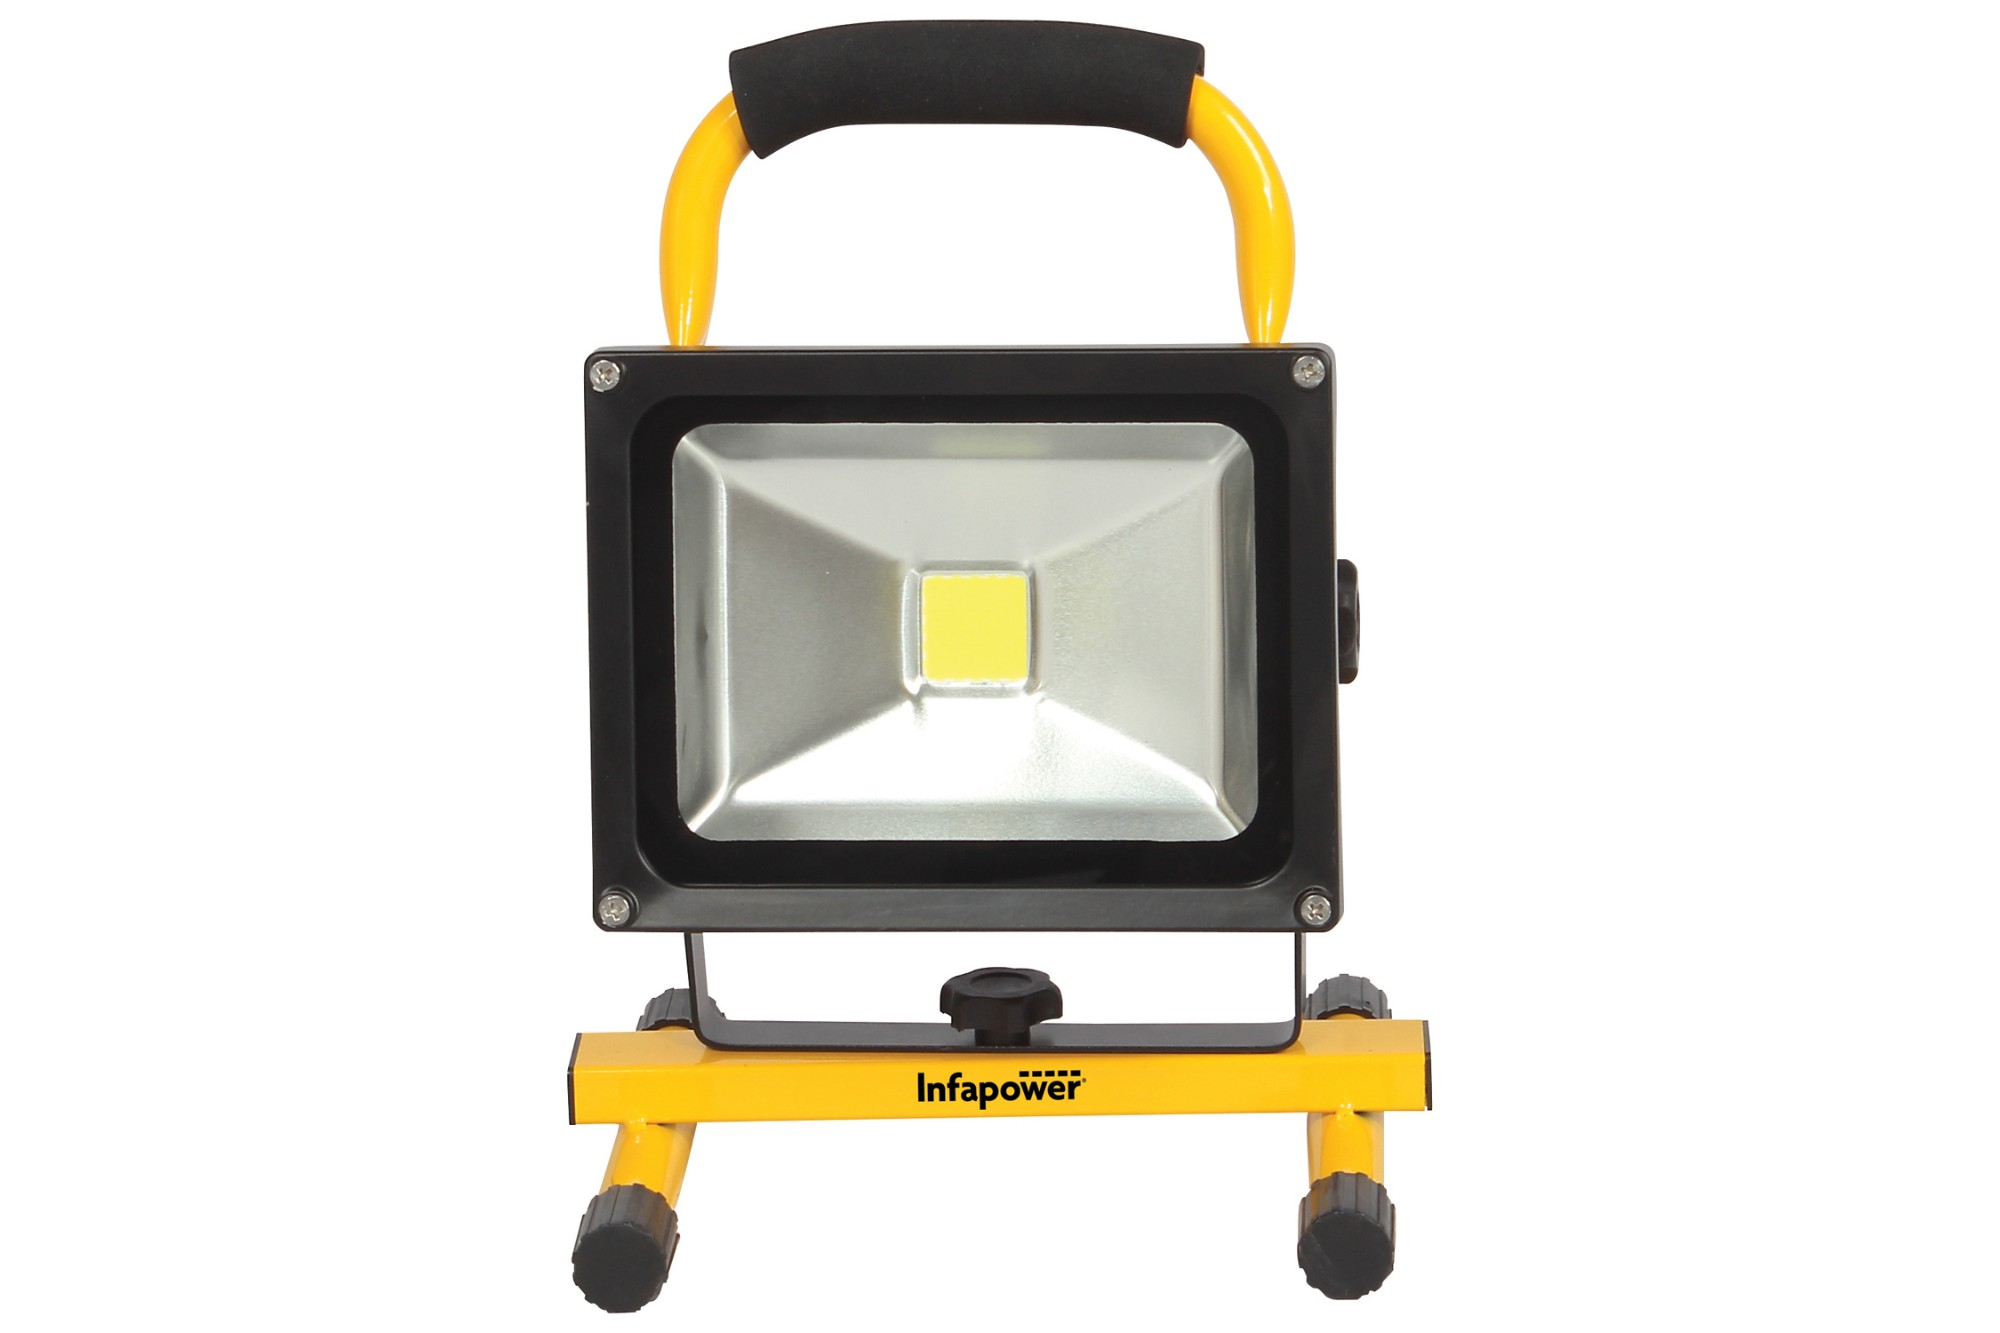 INFAPOWER 20 Watt COB Rechargeable Worklight 20W LED